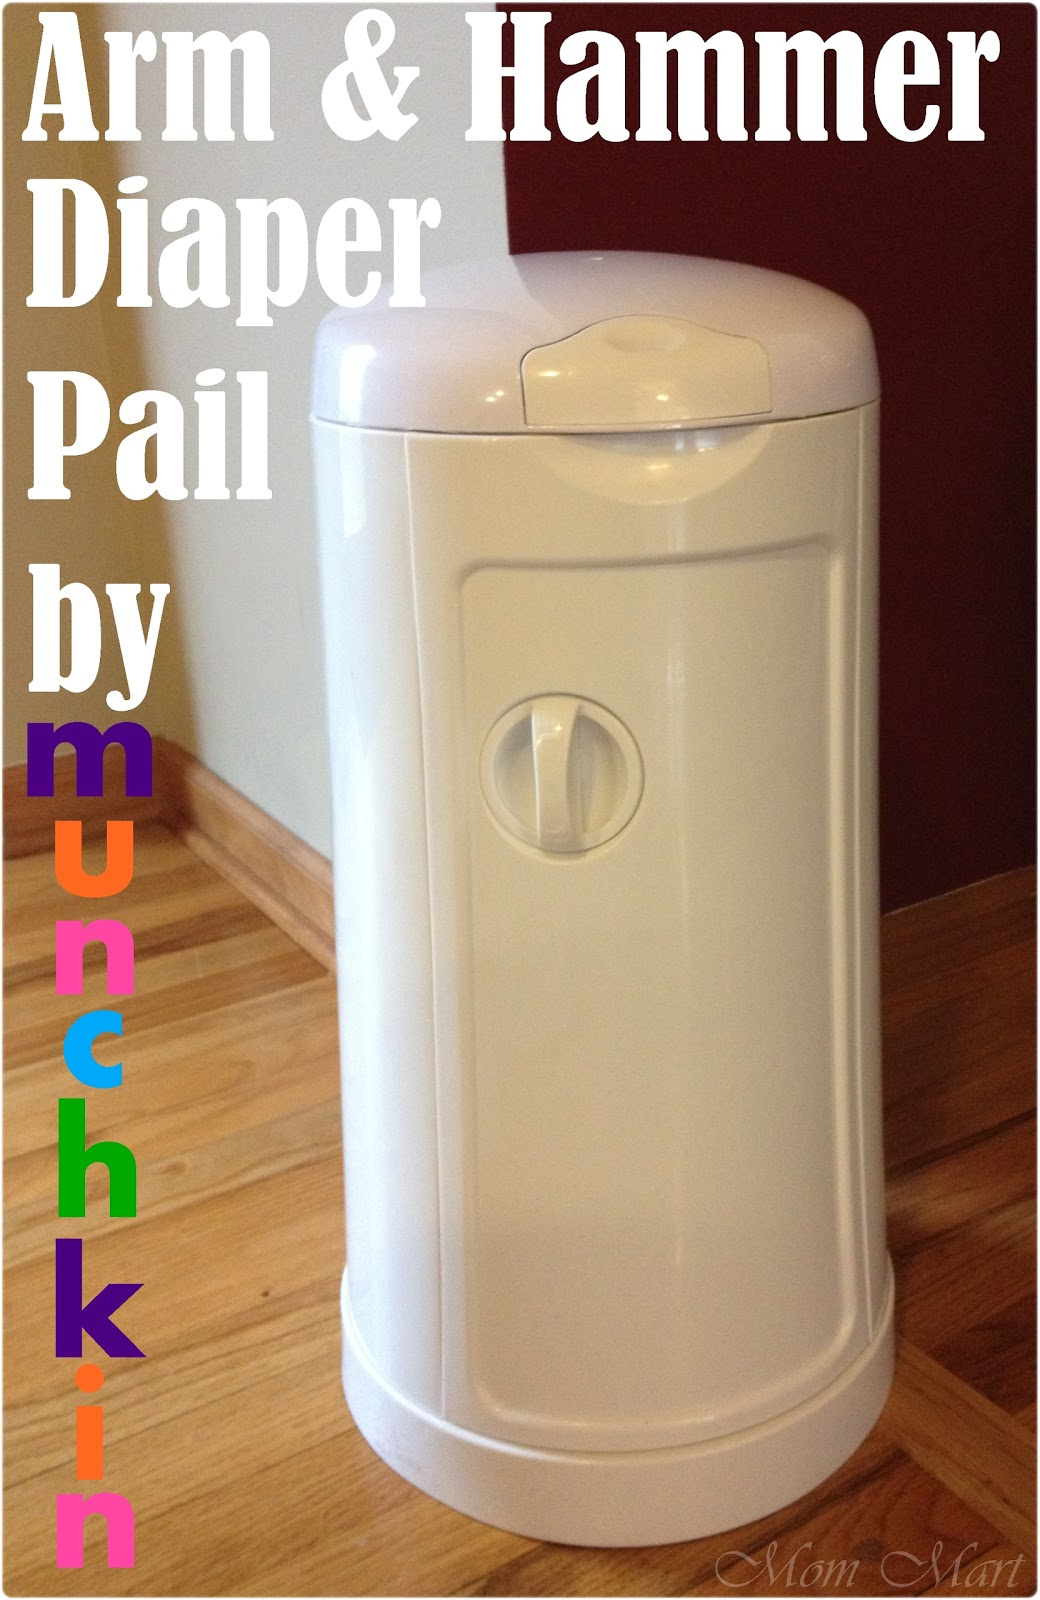 Arm and hammer diaper pail deodorizer